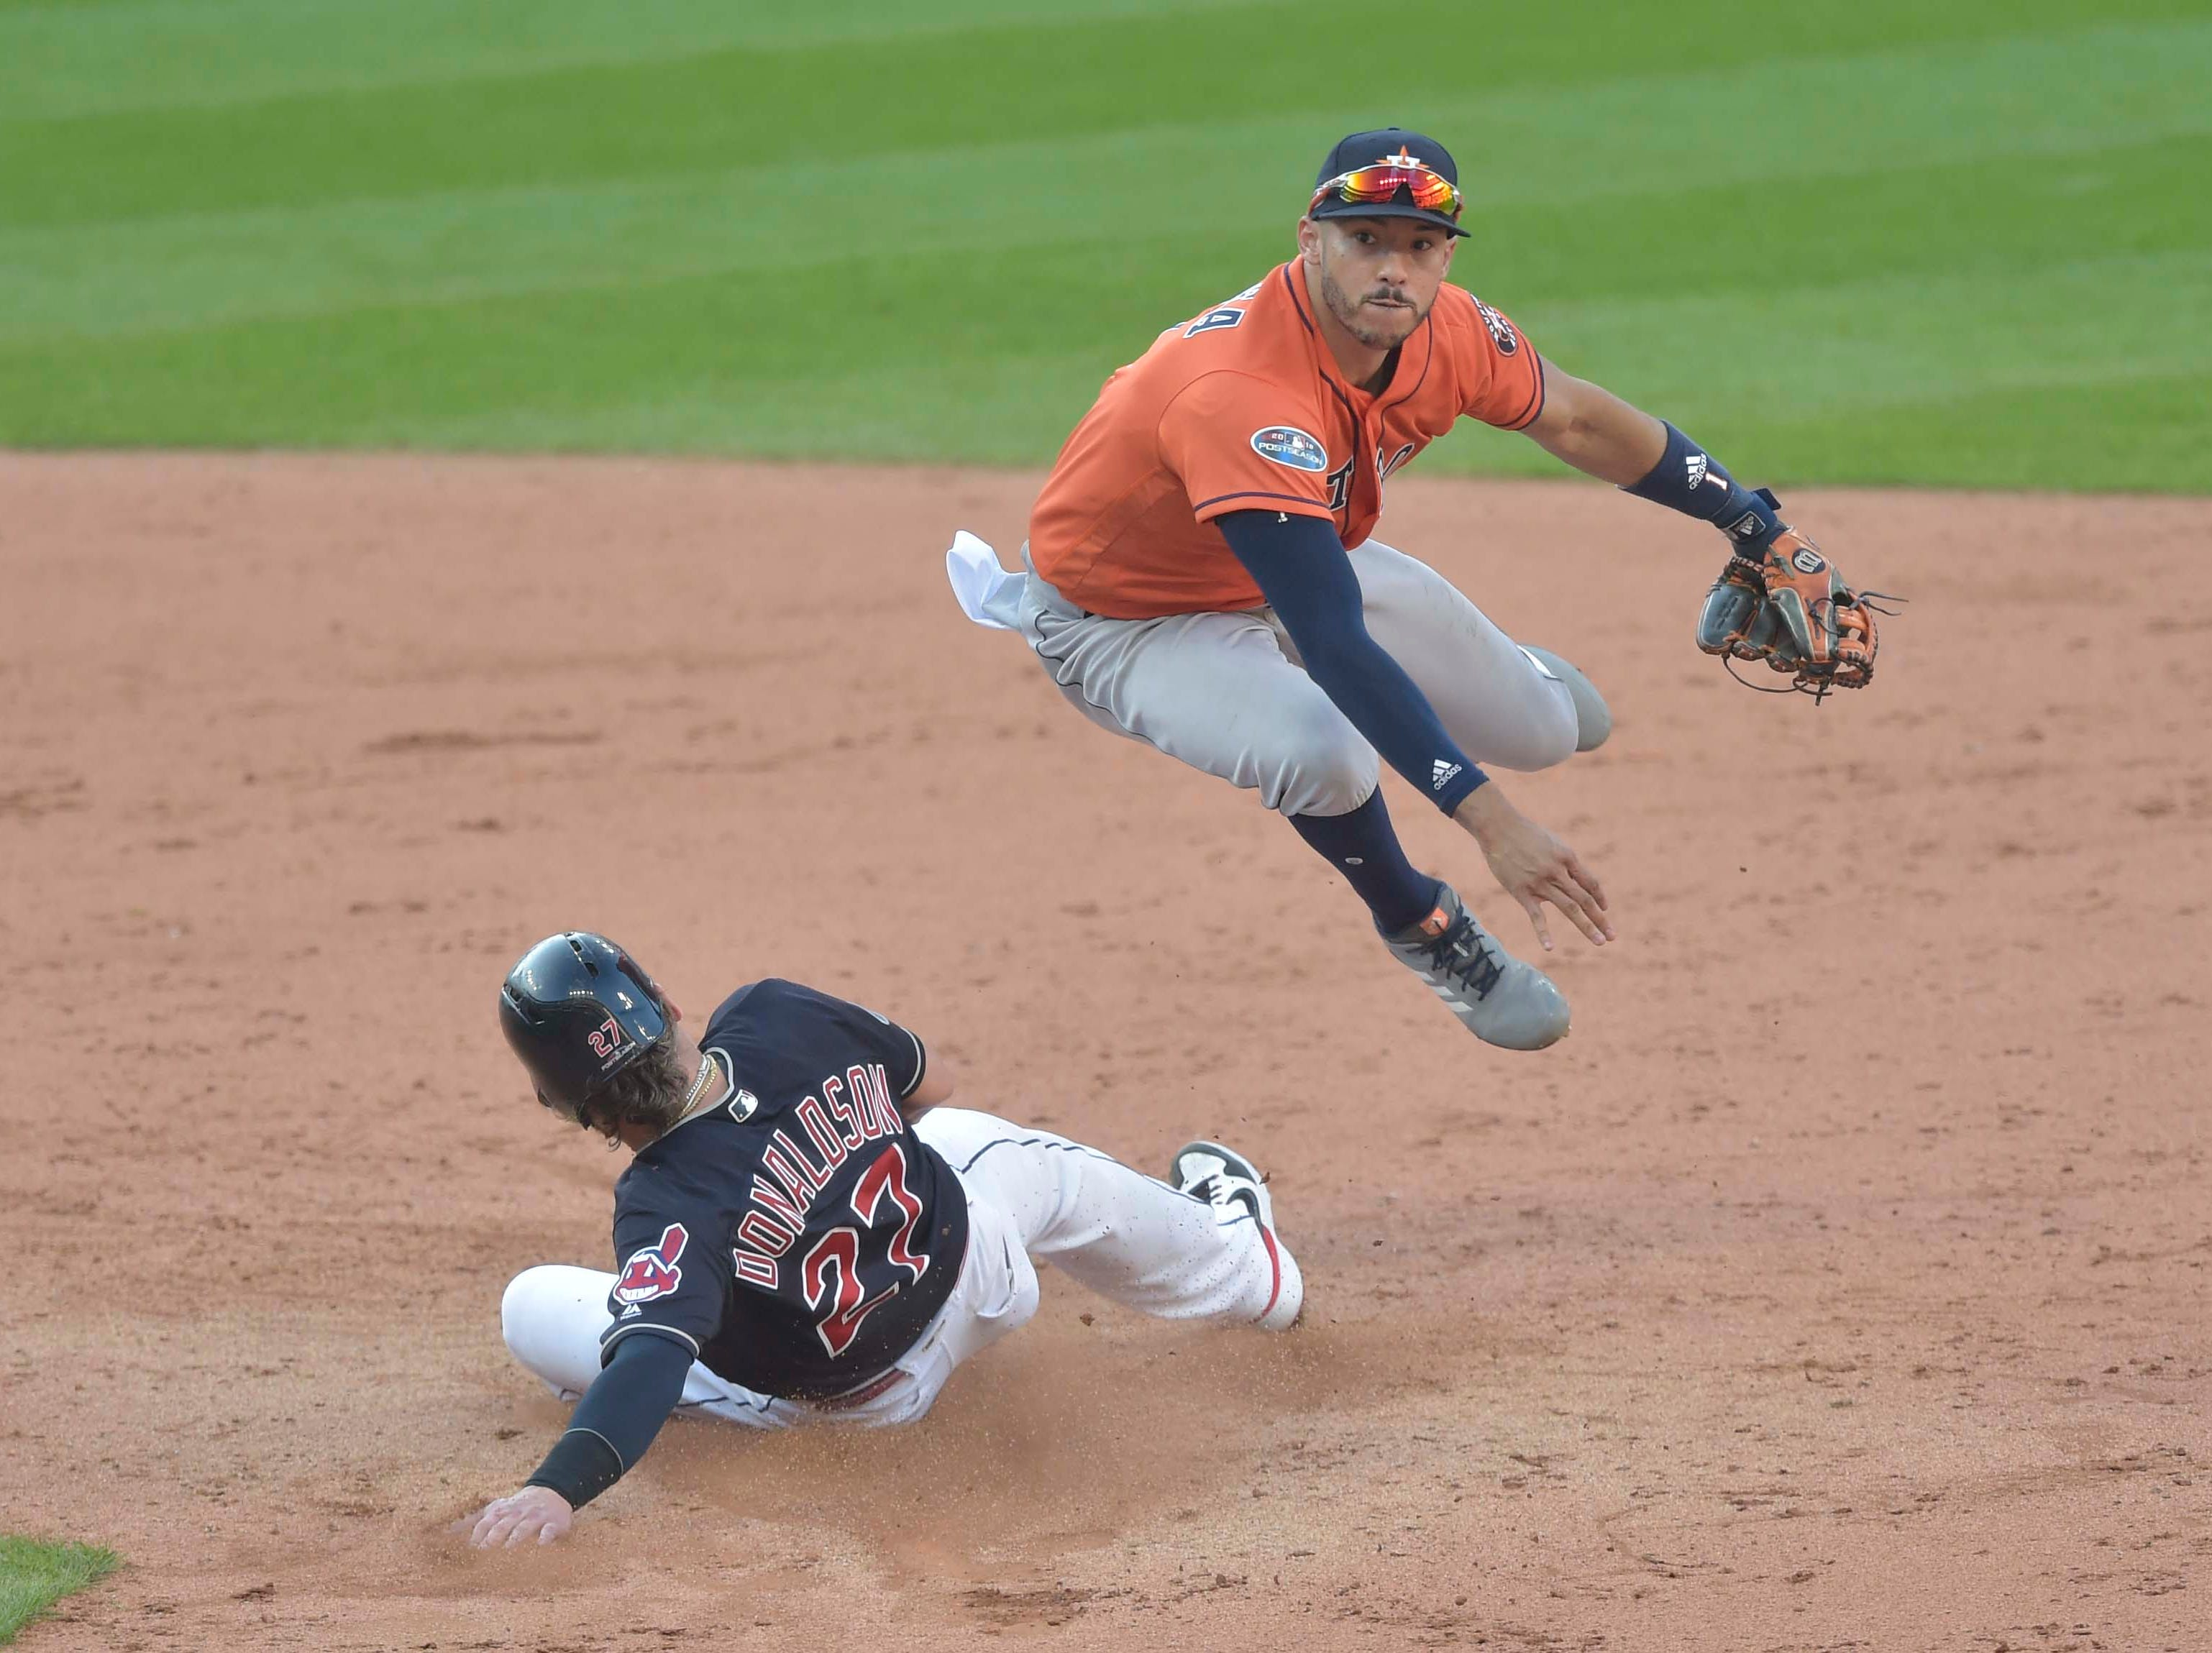 ALDS Game 3: Carlos Correa forces out Josh Donaldson at second base in the ninth inning>